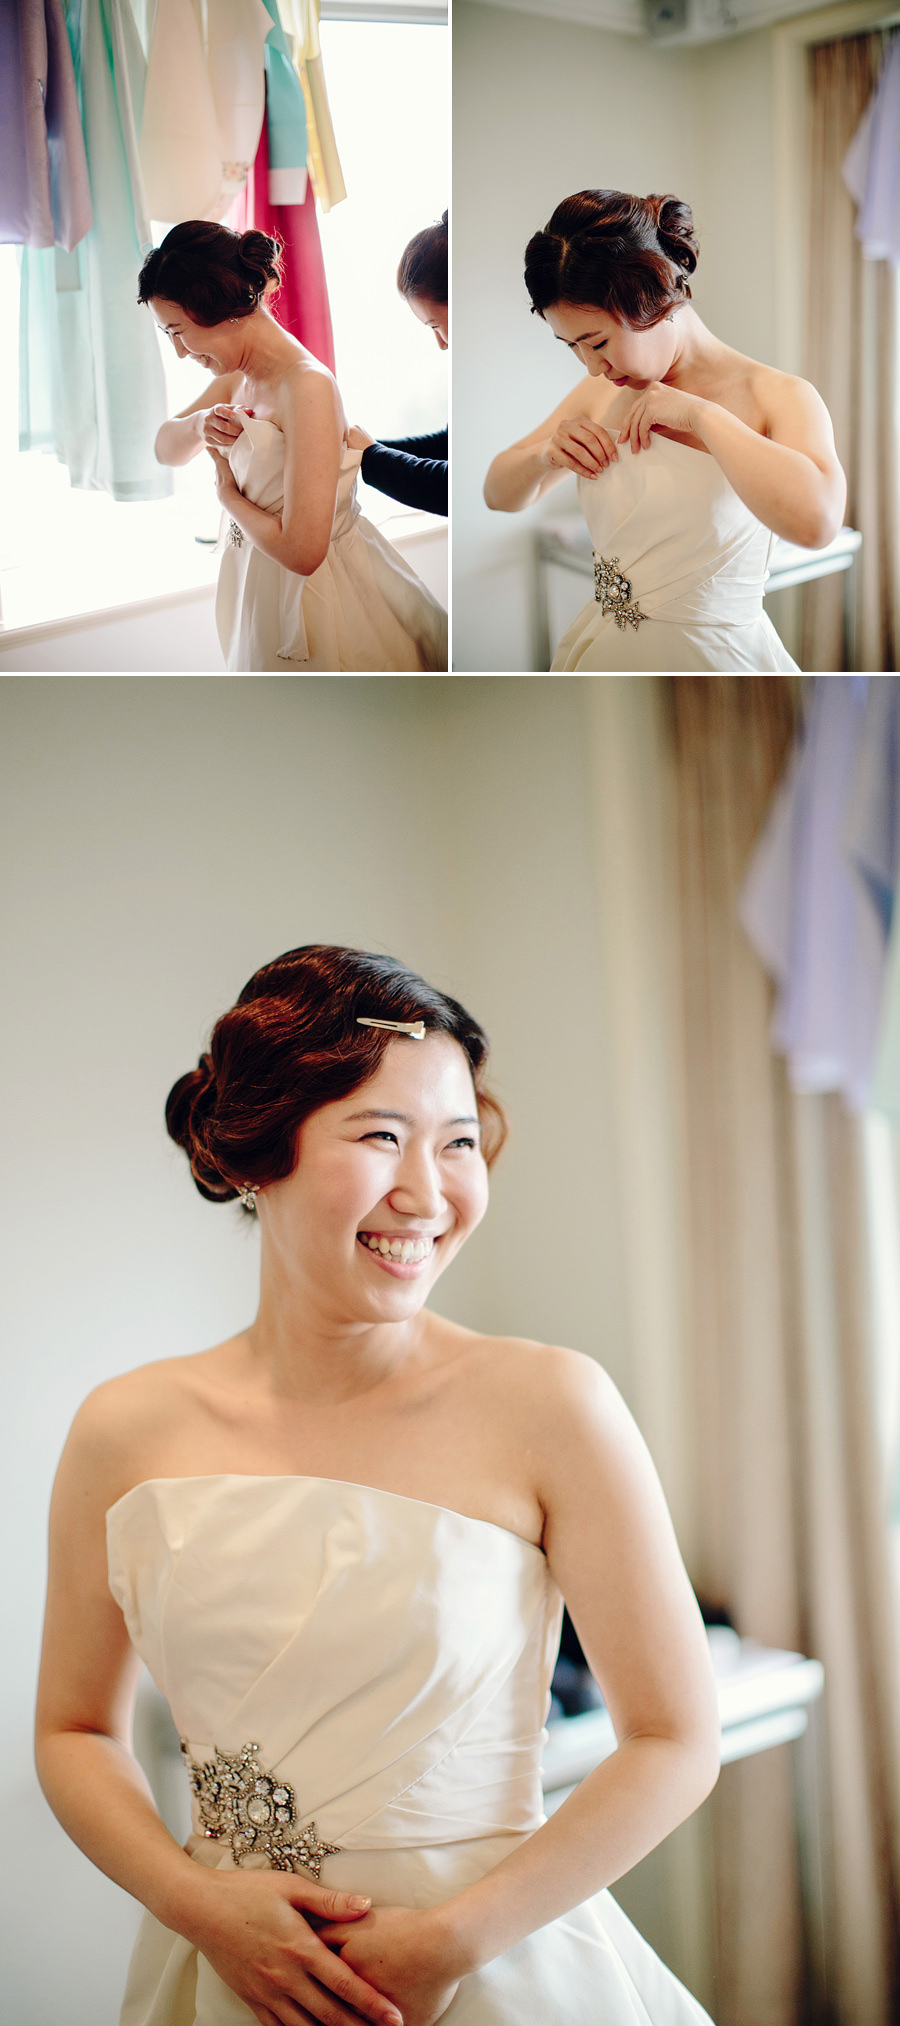 Sydney Wedding Photojournalist: Bride getting dressed